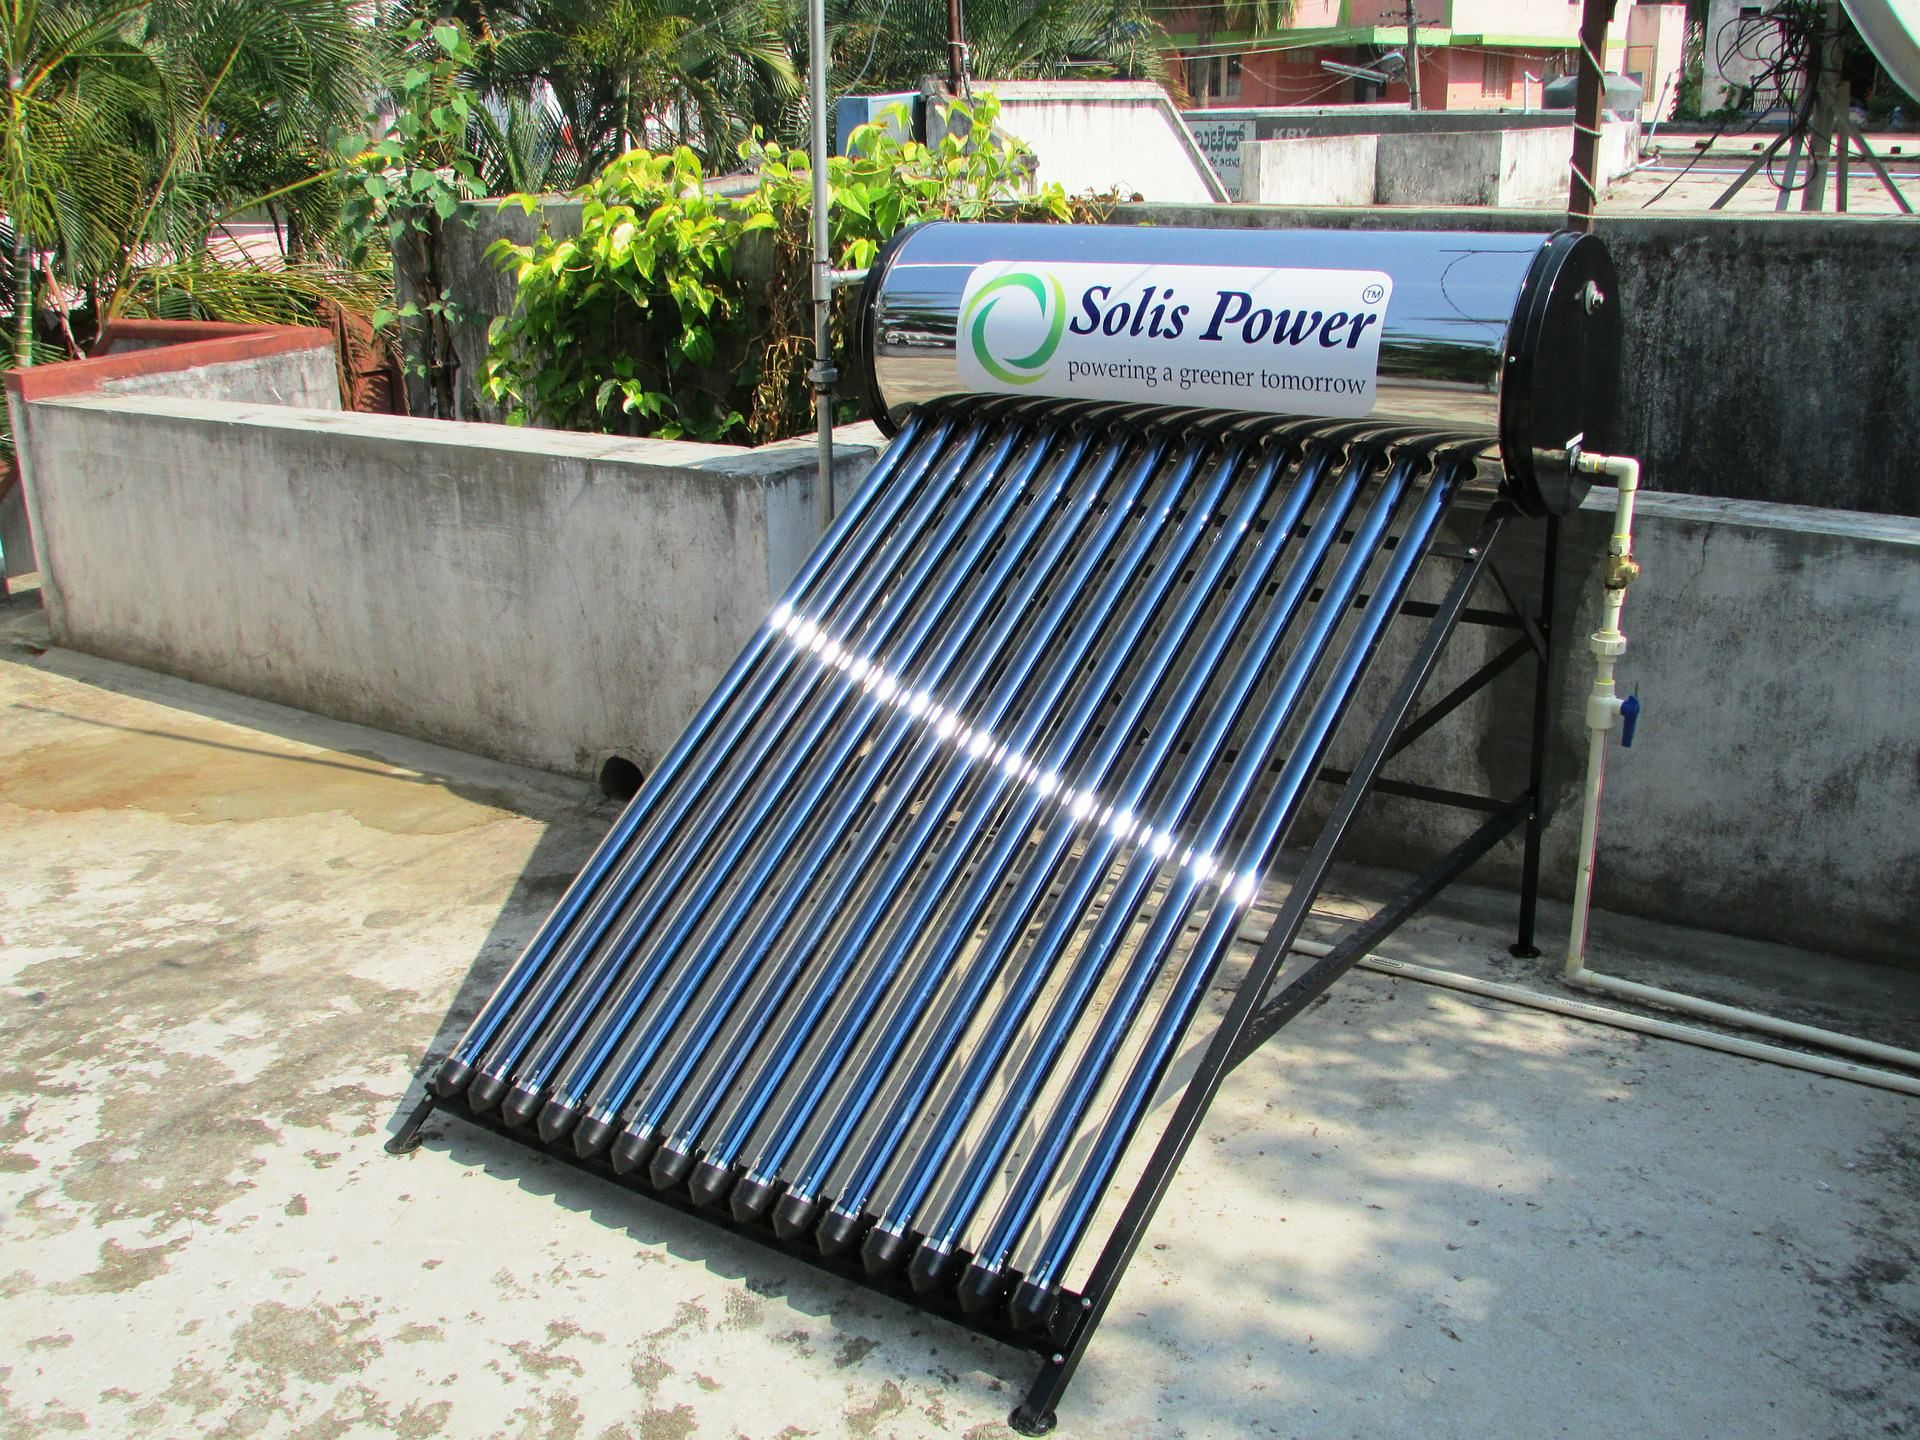 How to build solar panels 7 basic steps to follow green